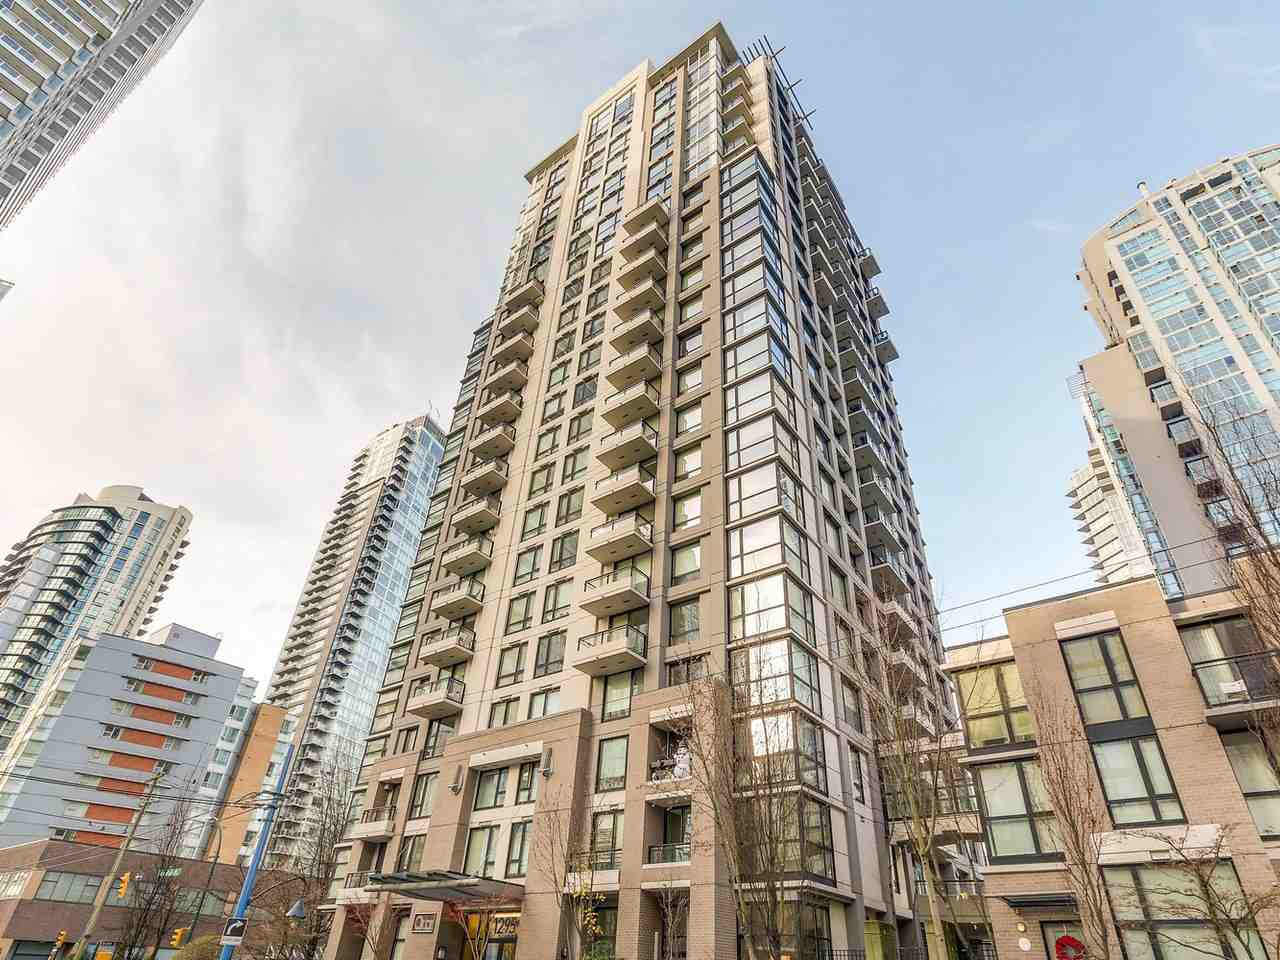 """Main Photo: 1509 1295 RICHARDS Street in Vancouver: Downtown VW Condo for sale in """"The Oscar"""" (Vancouver West)  : MLS®# R2268022"""